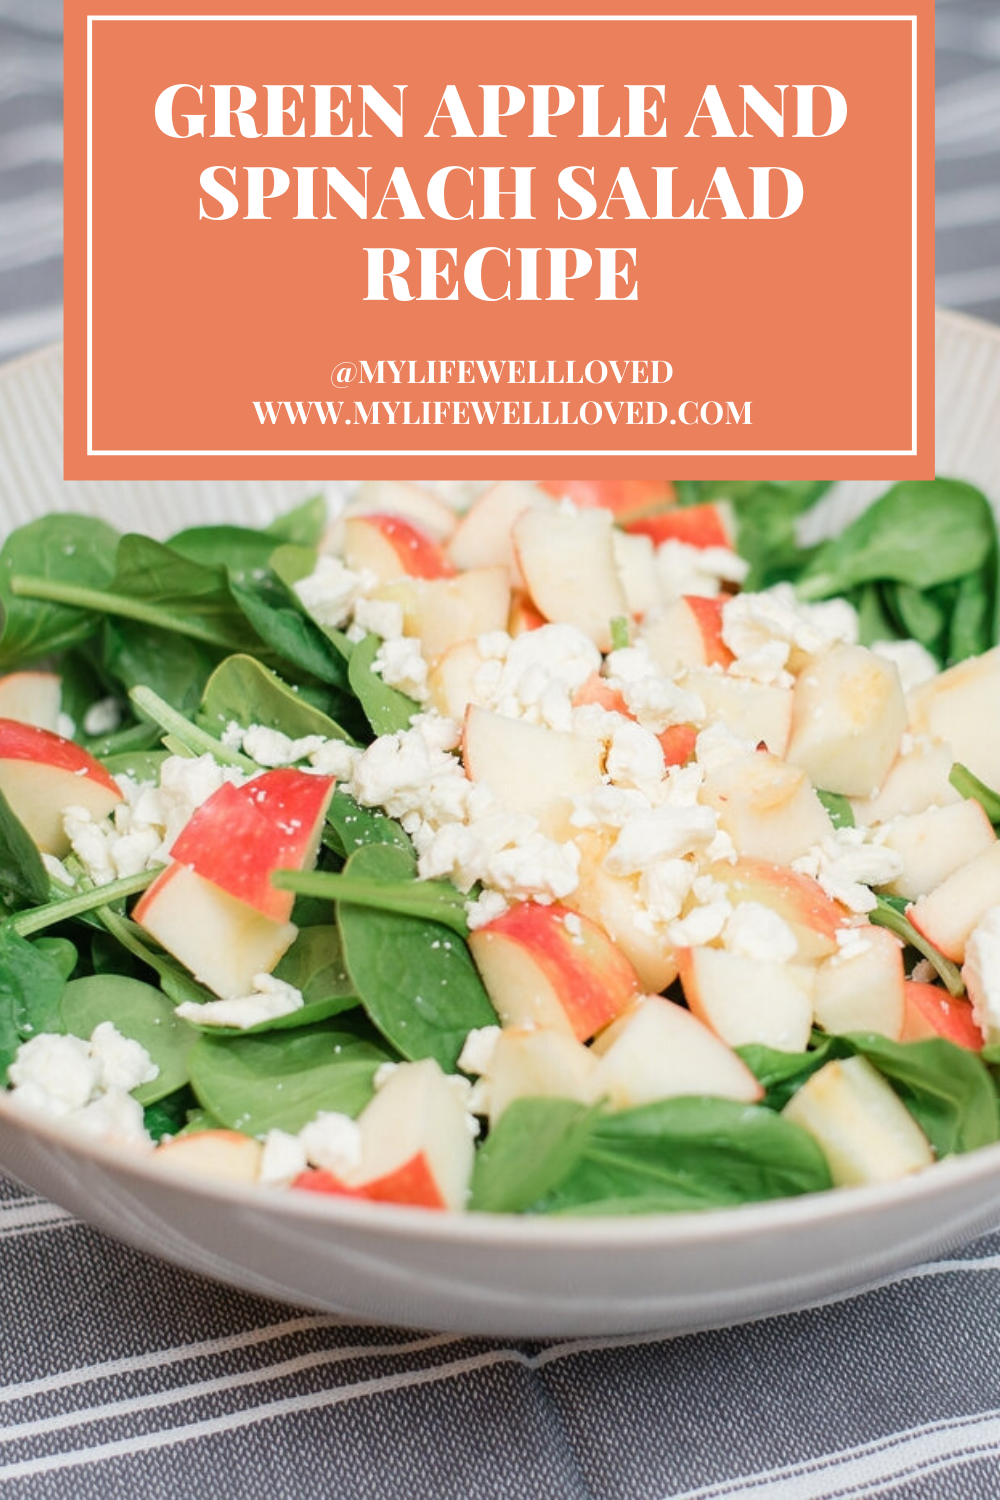 Green Apple And Spinach Salad by Alabama Health + Food blogger, Heather Brown // My Life Well Loved